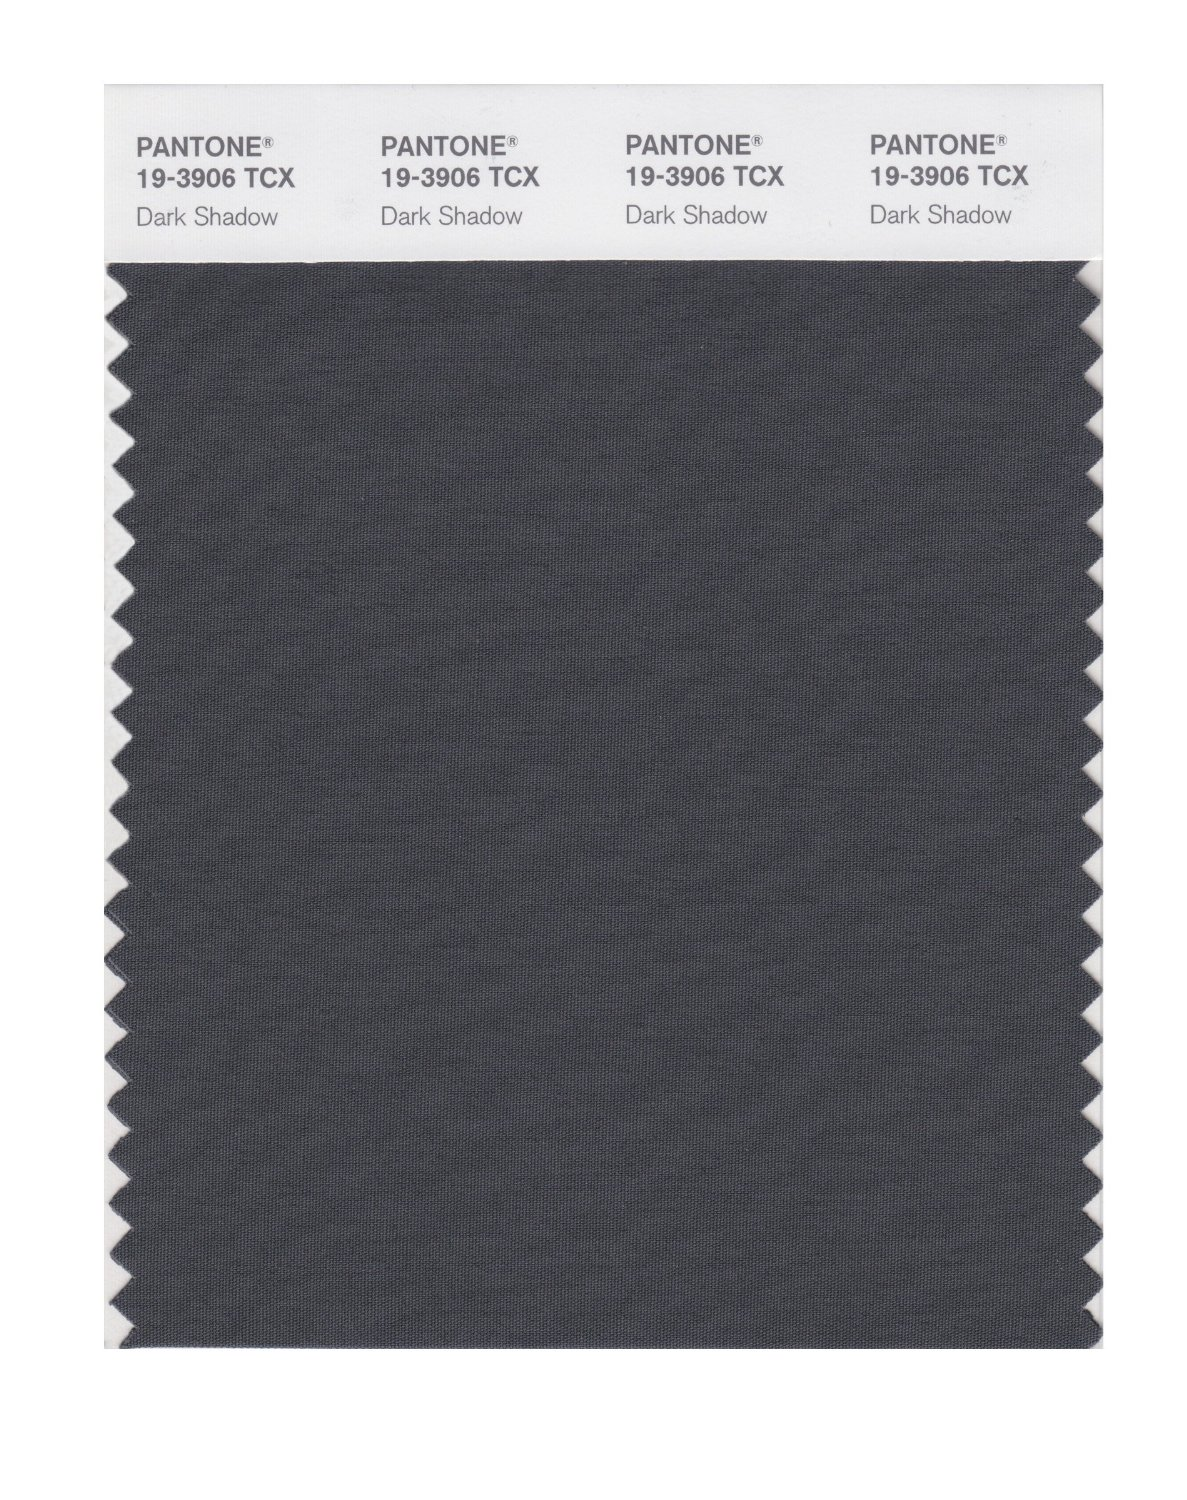 Pantone Smart Swatch 19-3906 Dark Shadow